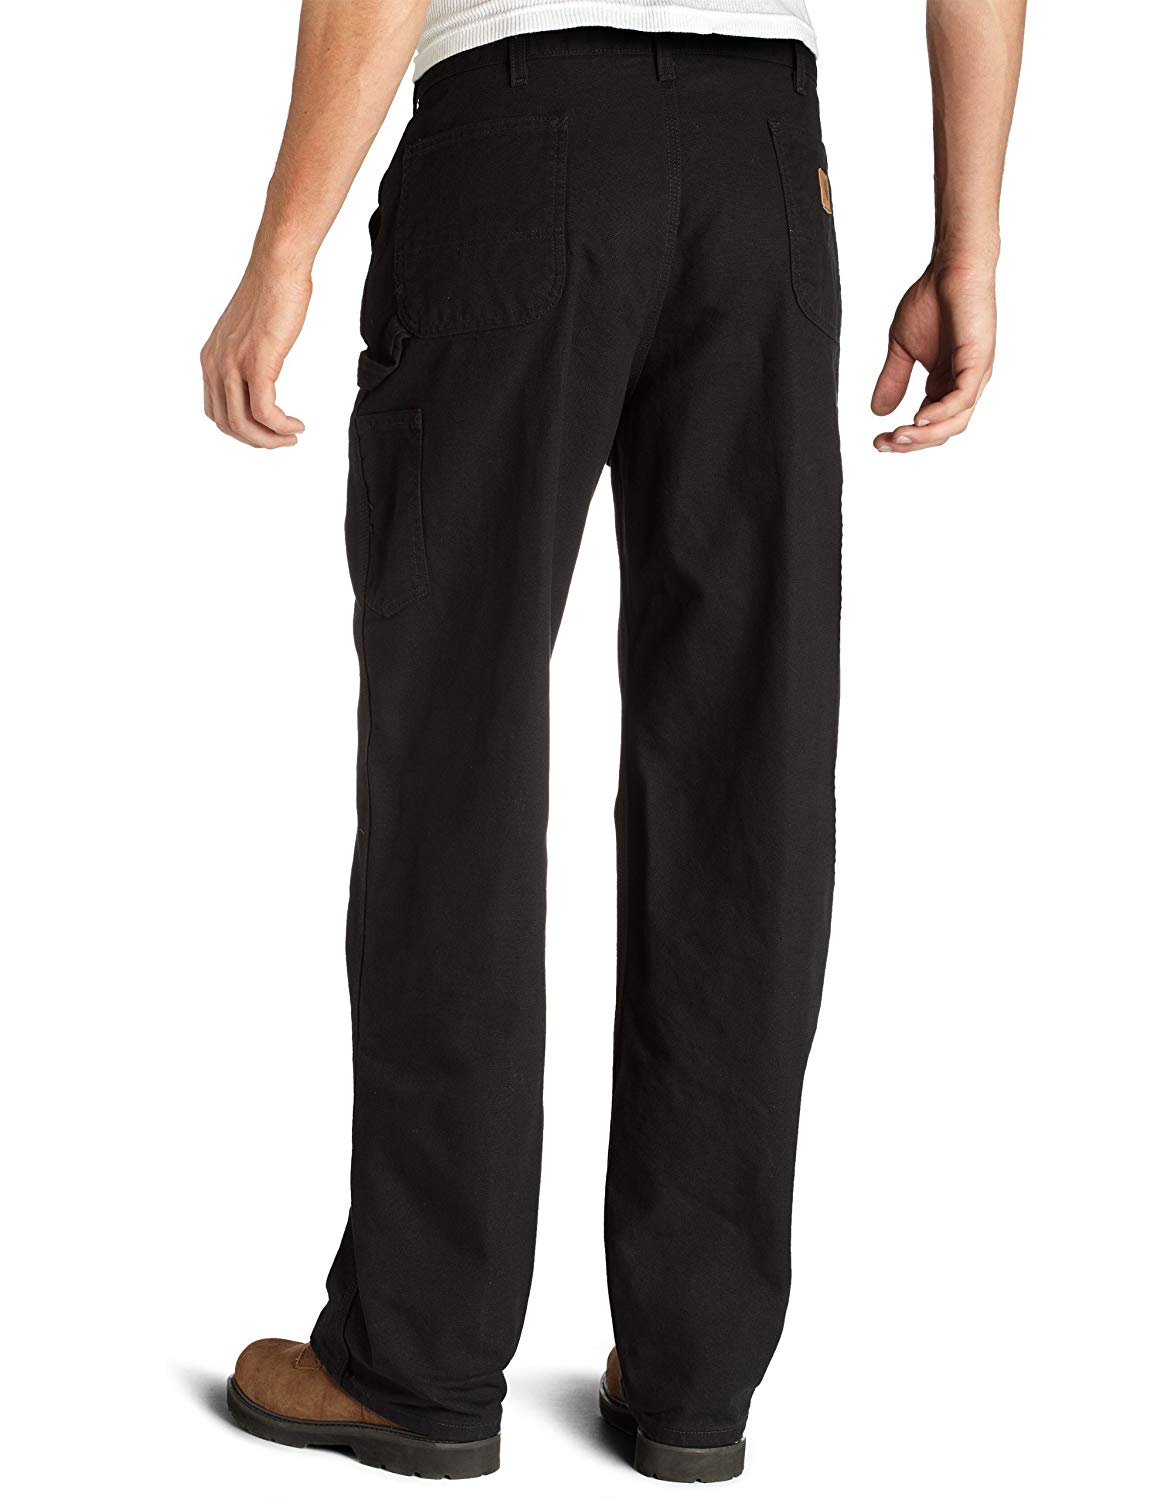 Pant Utility Washed Dungaree Men's Carhartt Duck Work xC1gXY1wq